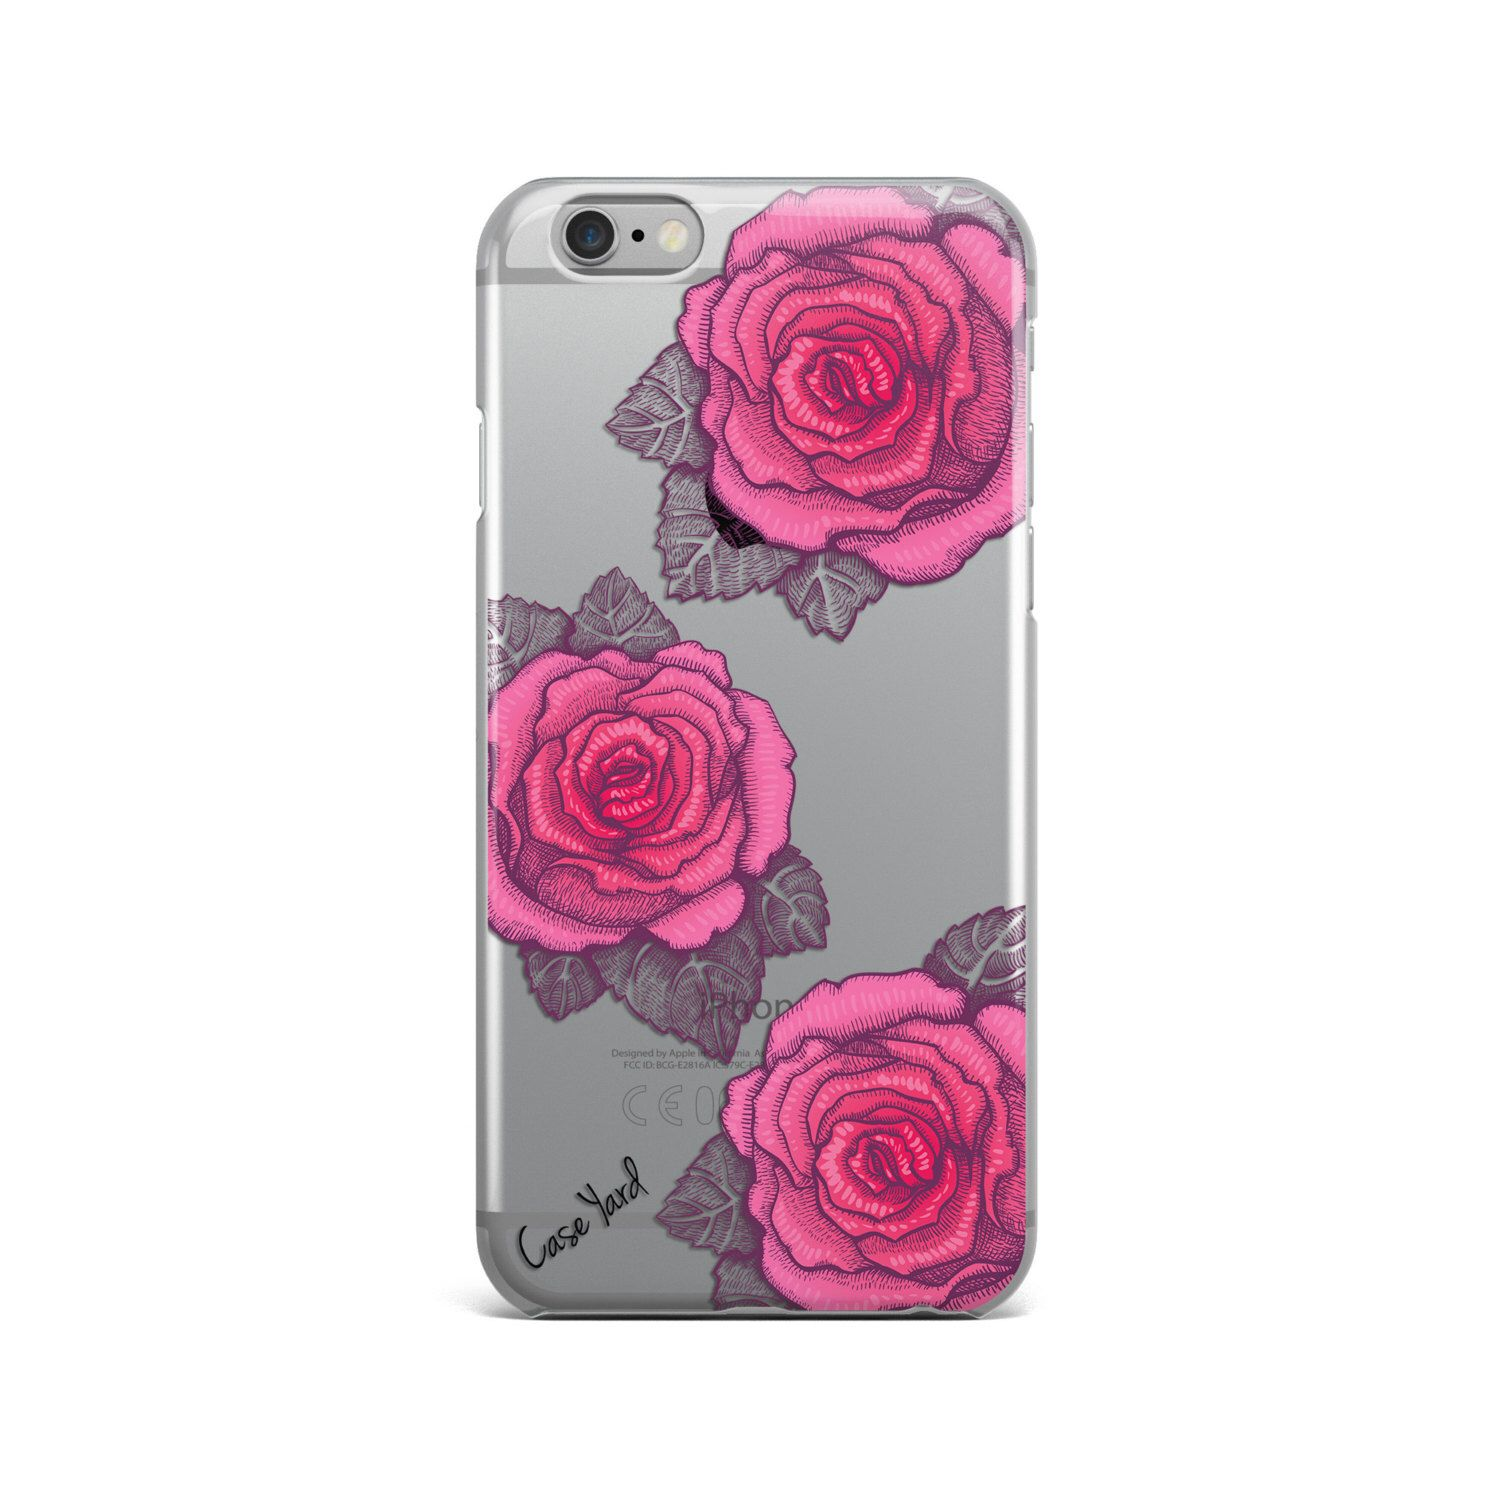 iPhone 11 Clear Case, Apple iPhone 11 Pro Max Xsmax Xs Xr